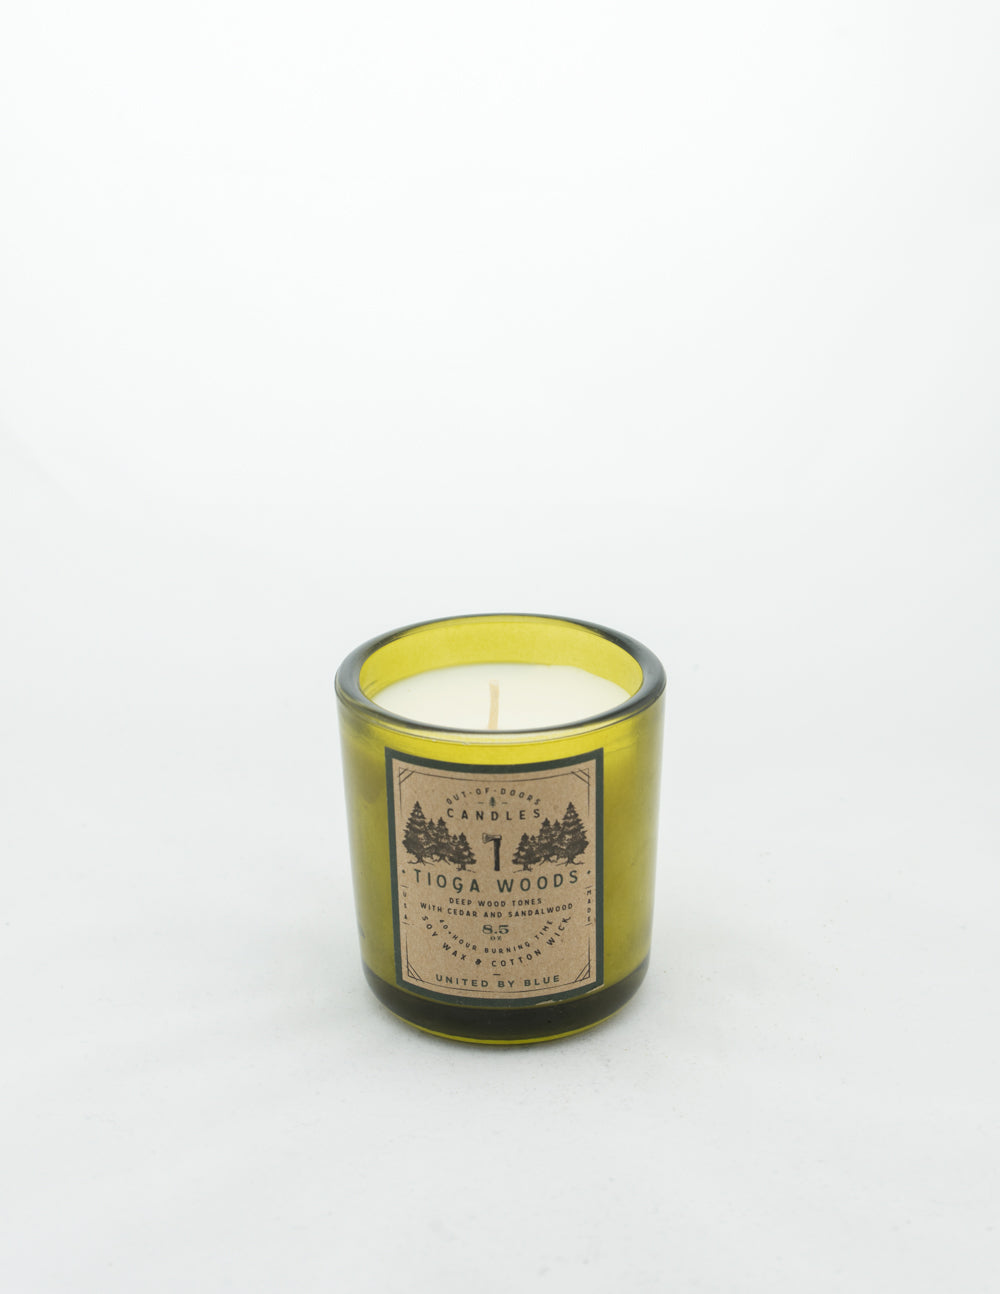 United By Blue - Tioga Woods Candle 8.5oz